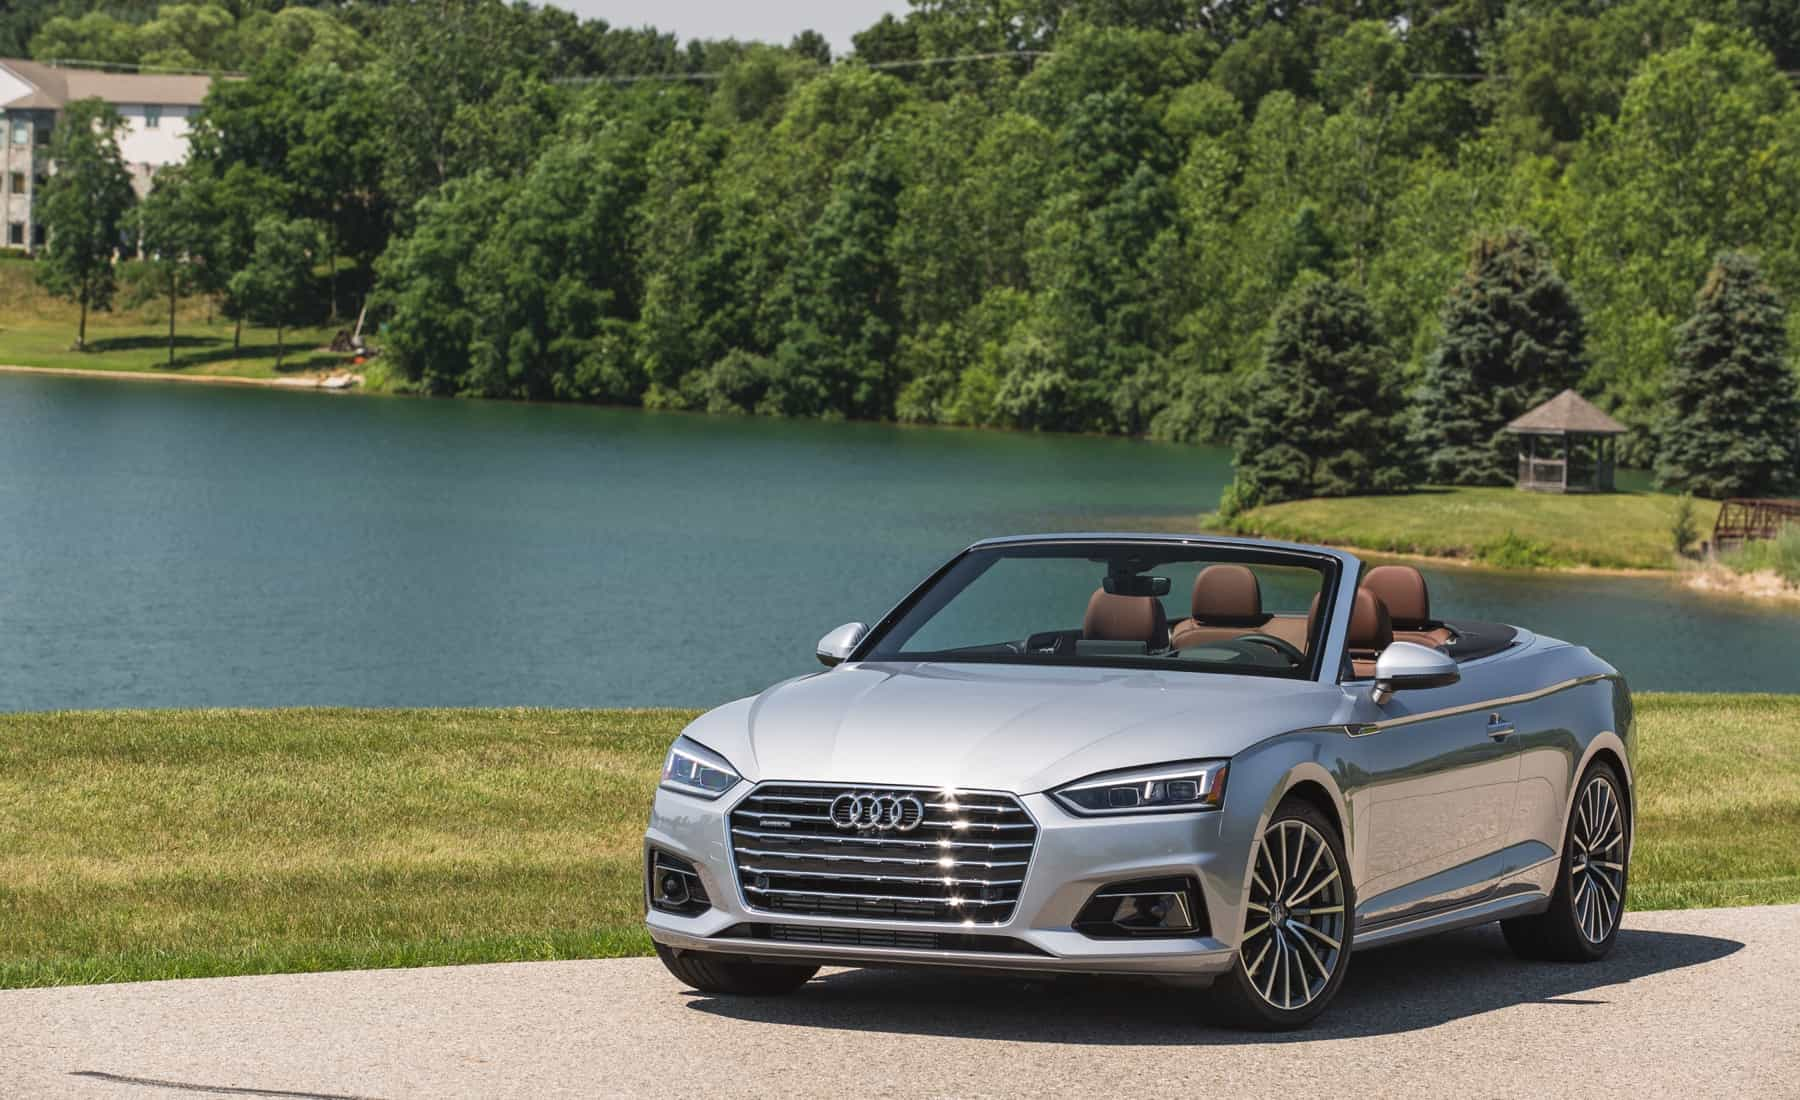 2018 Audi A5 Cabriolet Exterior Roof Open (Photo 34 of 45)